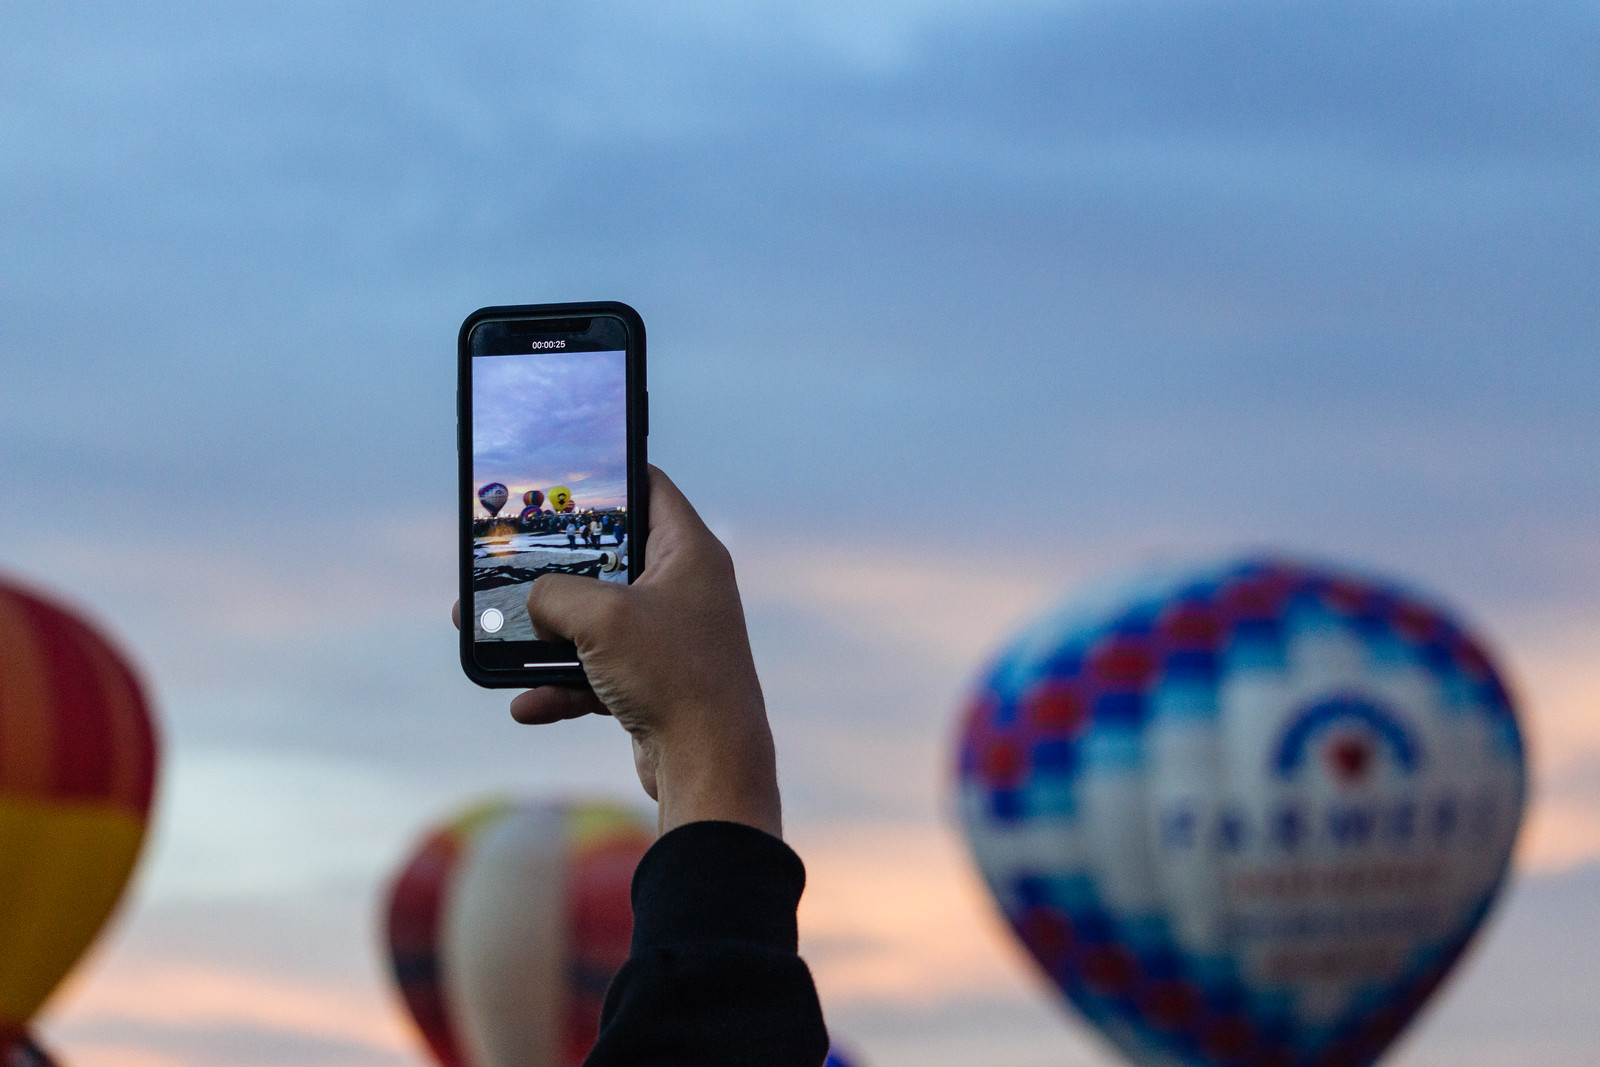 Person photographing balloons on their smartphone at the Albuquerque International Balloon Fiesta